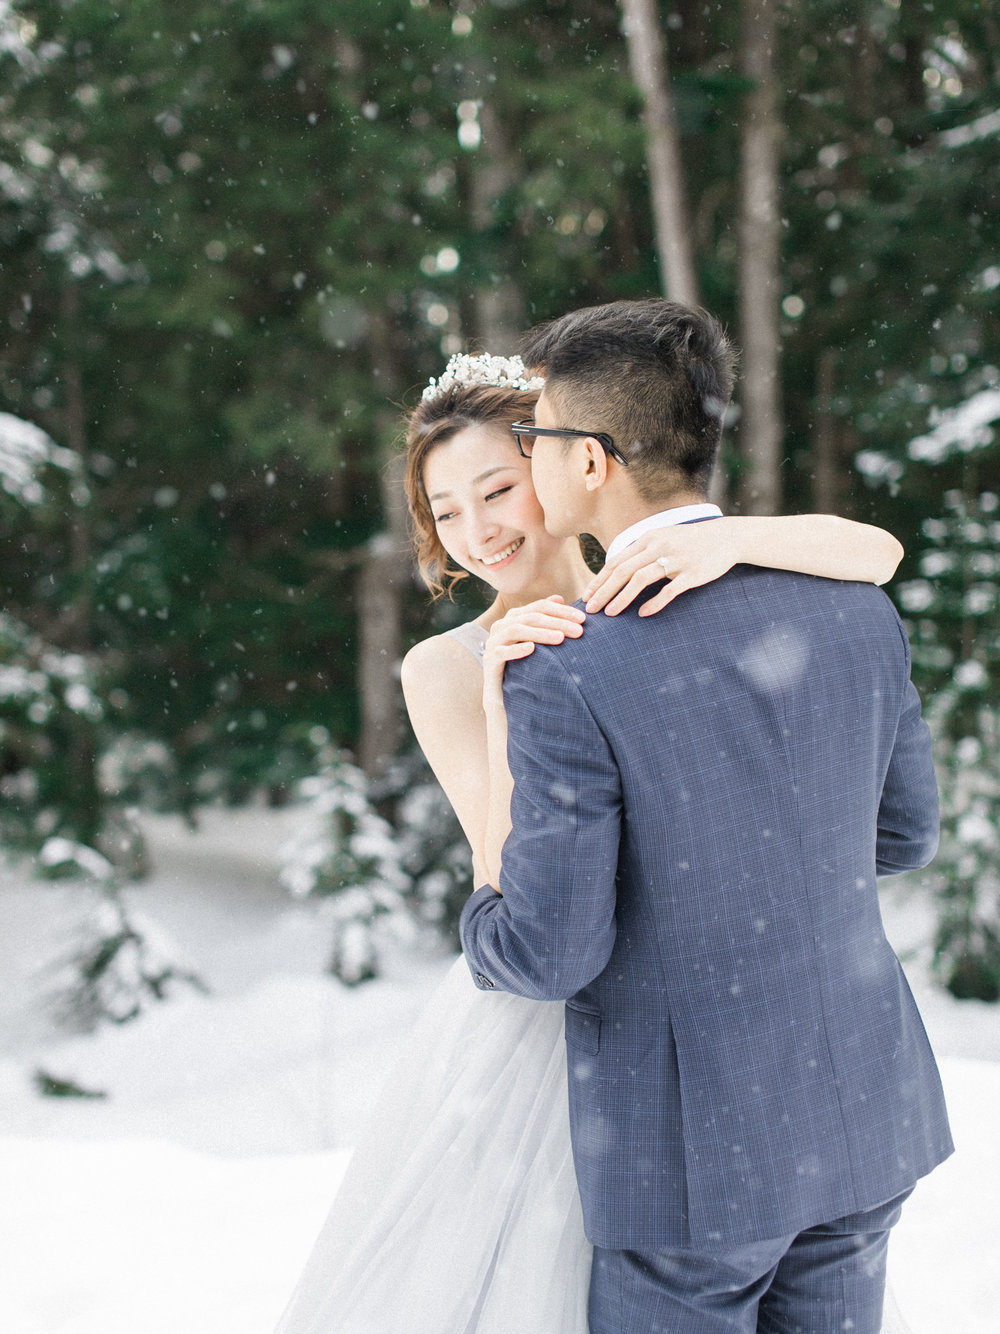 20170225LeslyJerryPreWedding-5 copy.jpg